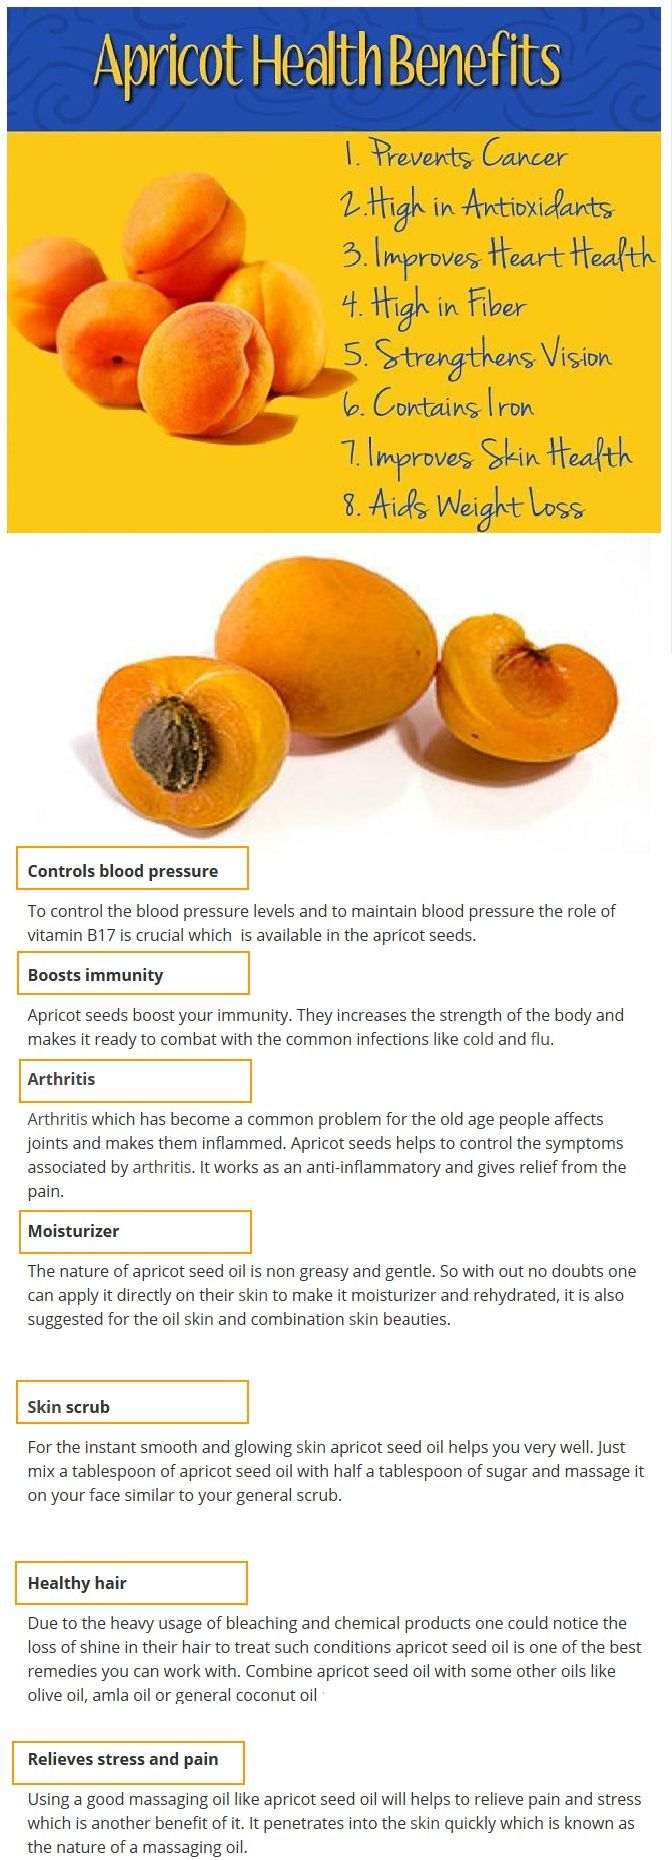 #Health_Benefits_of_Apricots   #Healthy_eating_tips   #healthy_diet_and_fitness   #healthy_eating   #healthy_foods   #healthy_fruits   #healthy_livingHealth Benefits Of Apricot, Healthy Food Healthy Fruit, Health Matter, Healthy Hints, Healthy Healthy Food, Healthy Fruit Healthy Liv, Healthy Eating Tips, Healthy Diet And Fit Healthy, Healthy Fit